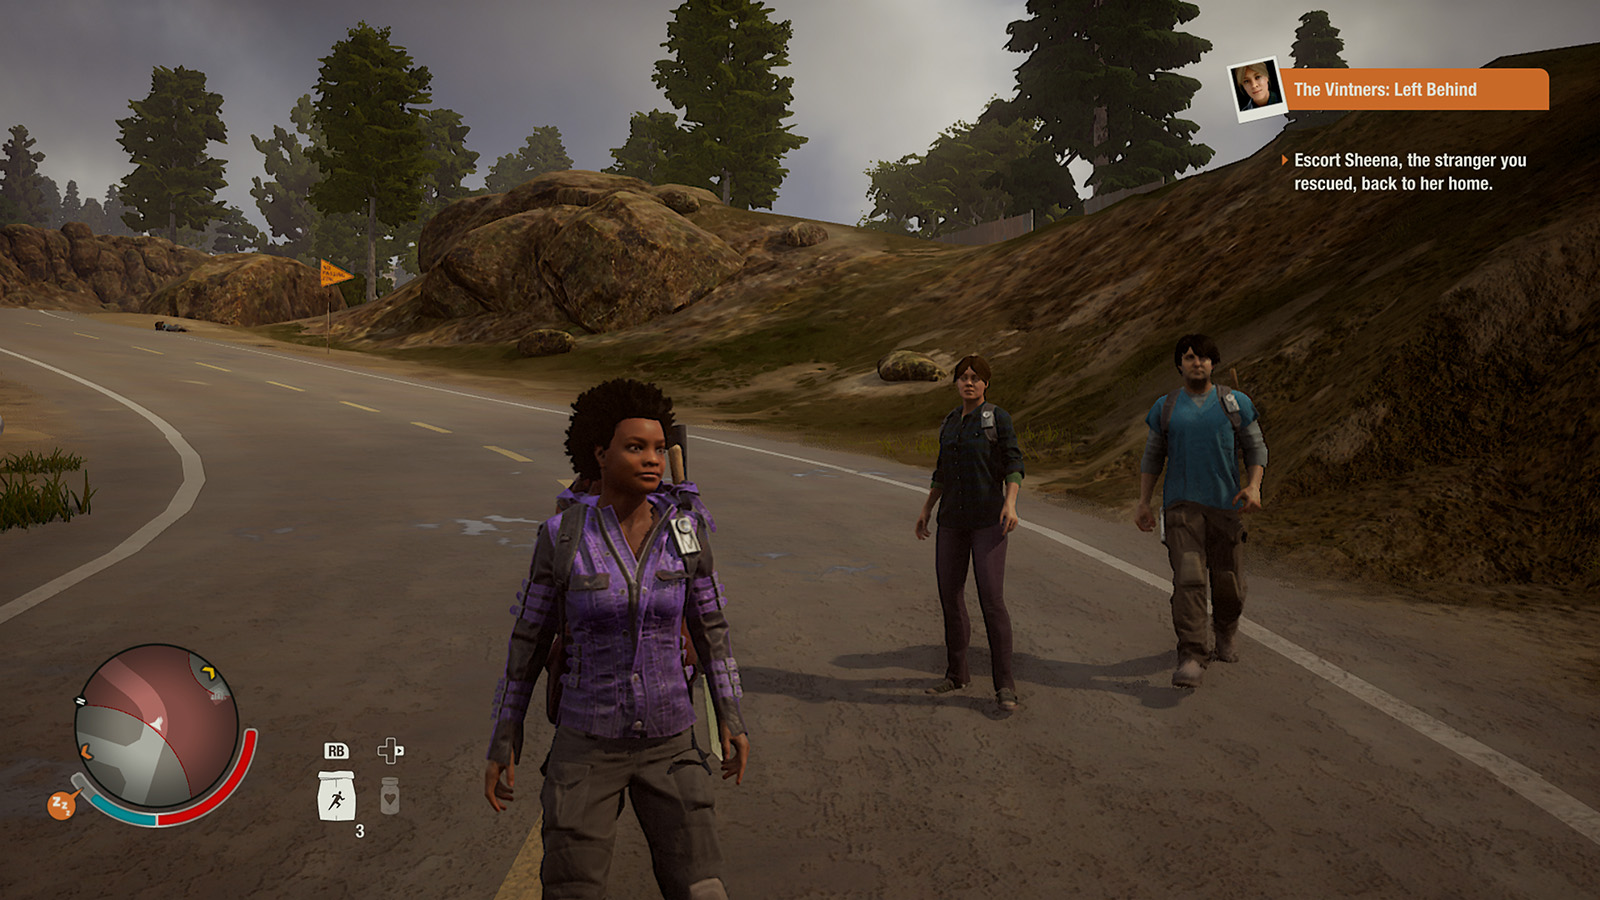 State of Decay 2 Tips - Controls Guide, How to Save, How to Promote